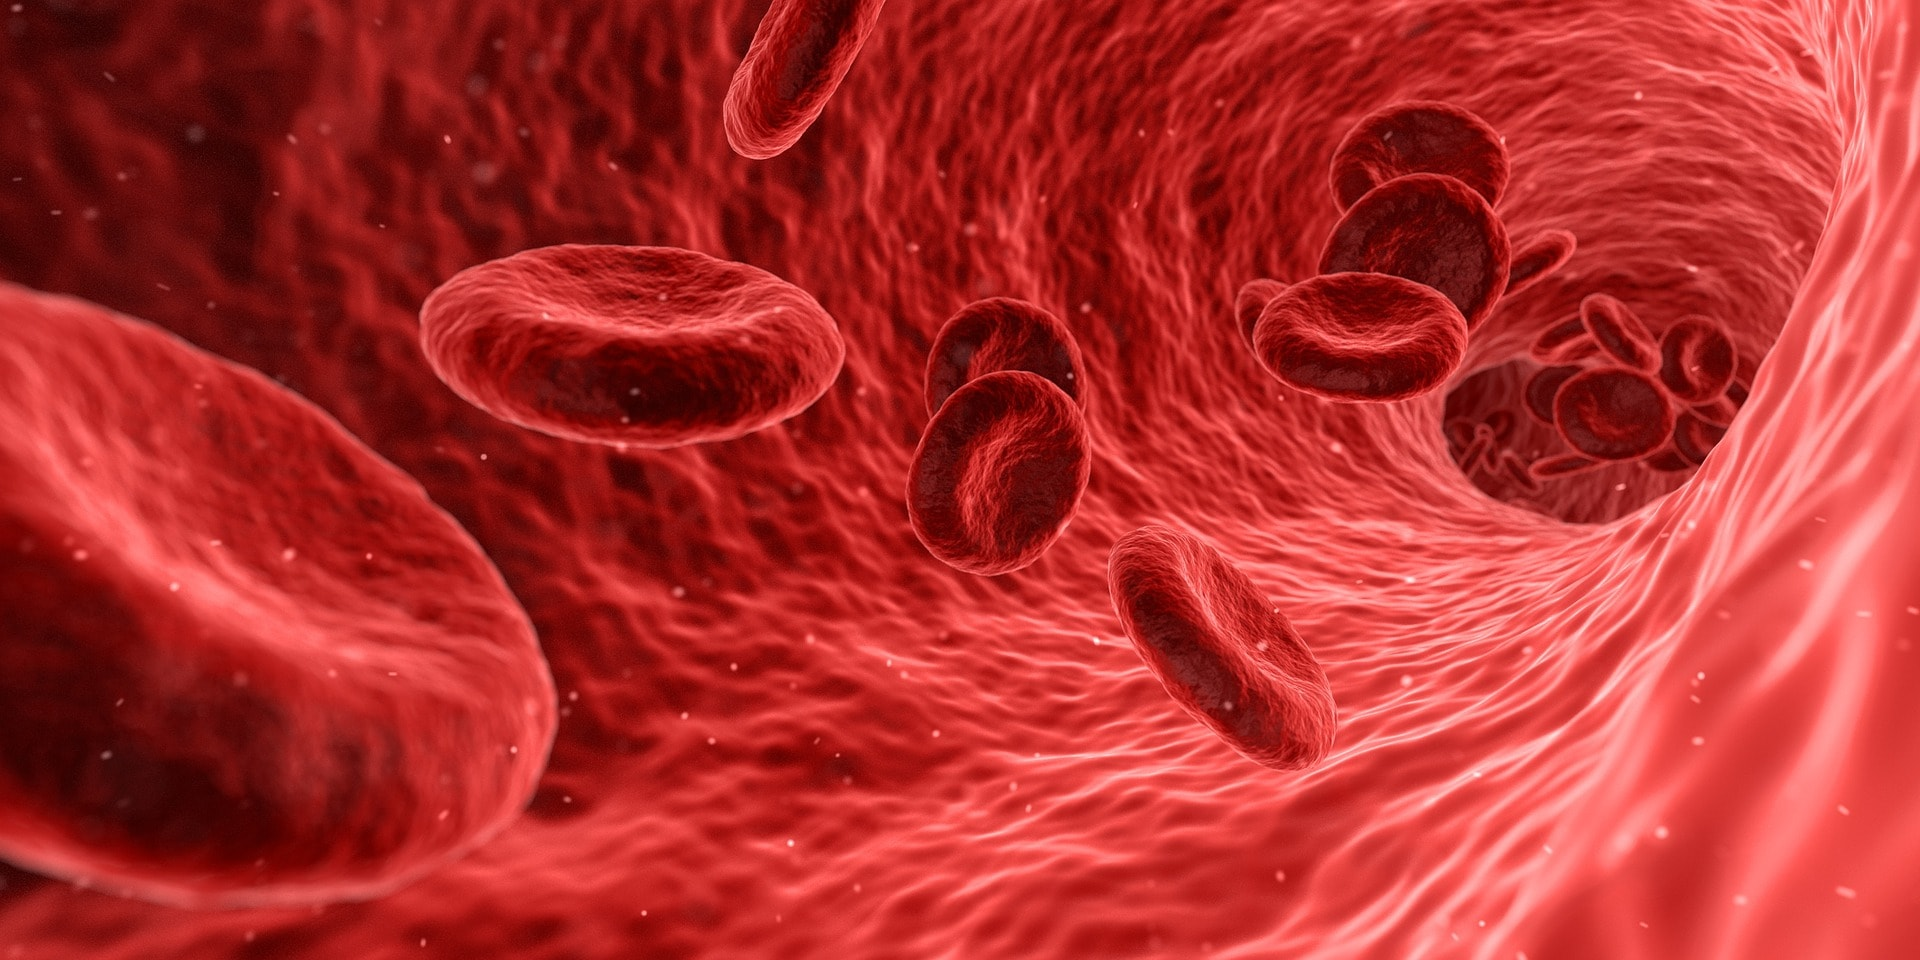 Top 15 Best Blood Cleansing Foods - How to Purify Blood with Natural Organic Foods